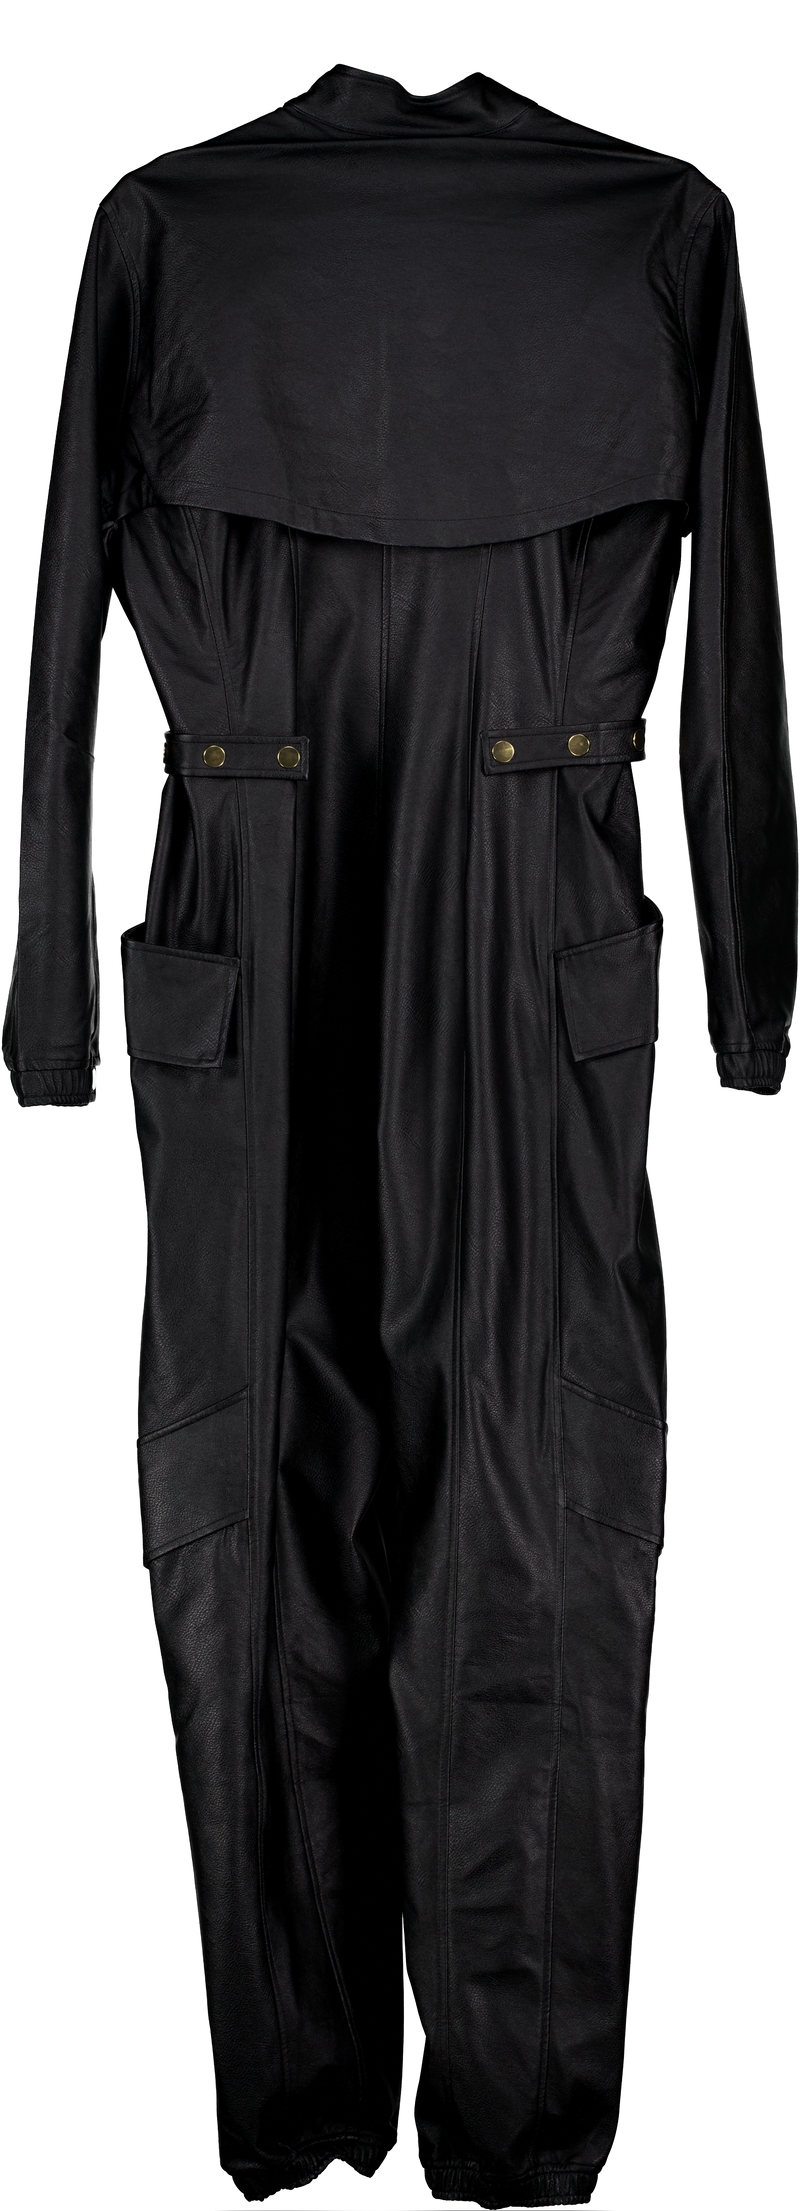 Jordan COURT-TO-RUNWAY Flightsuit